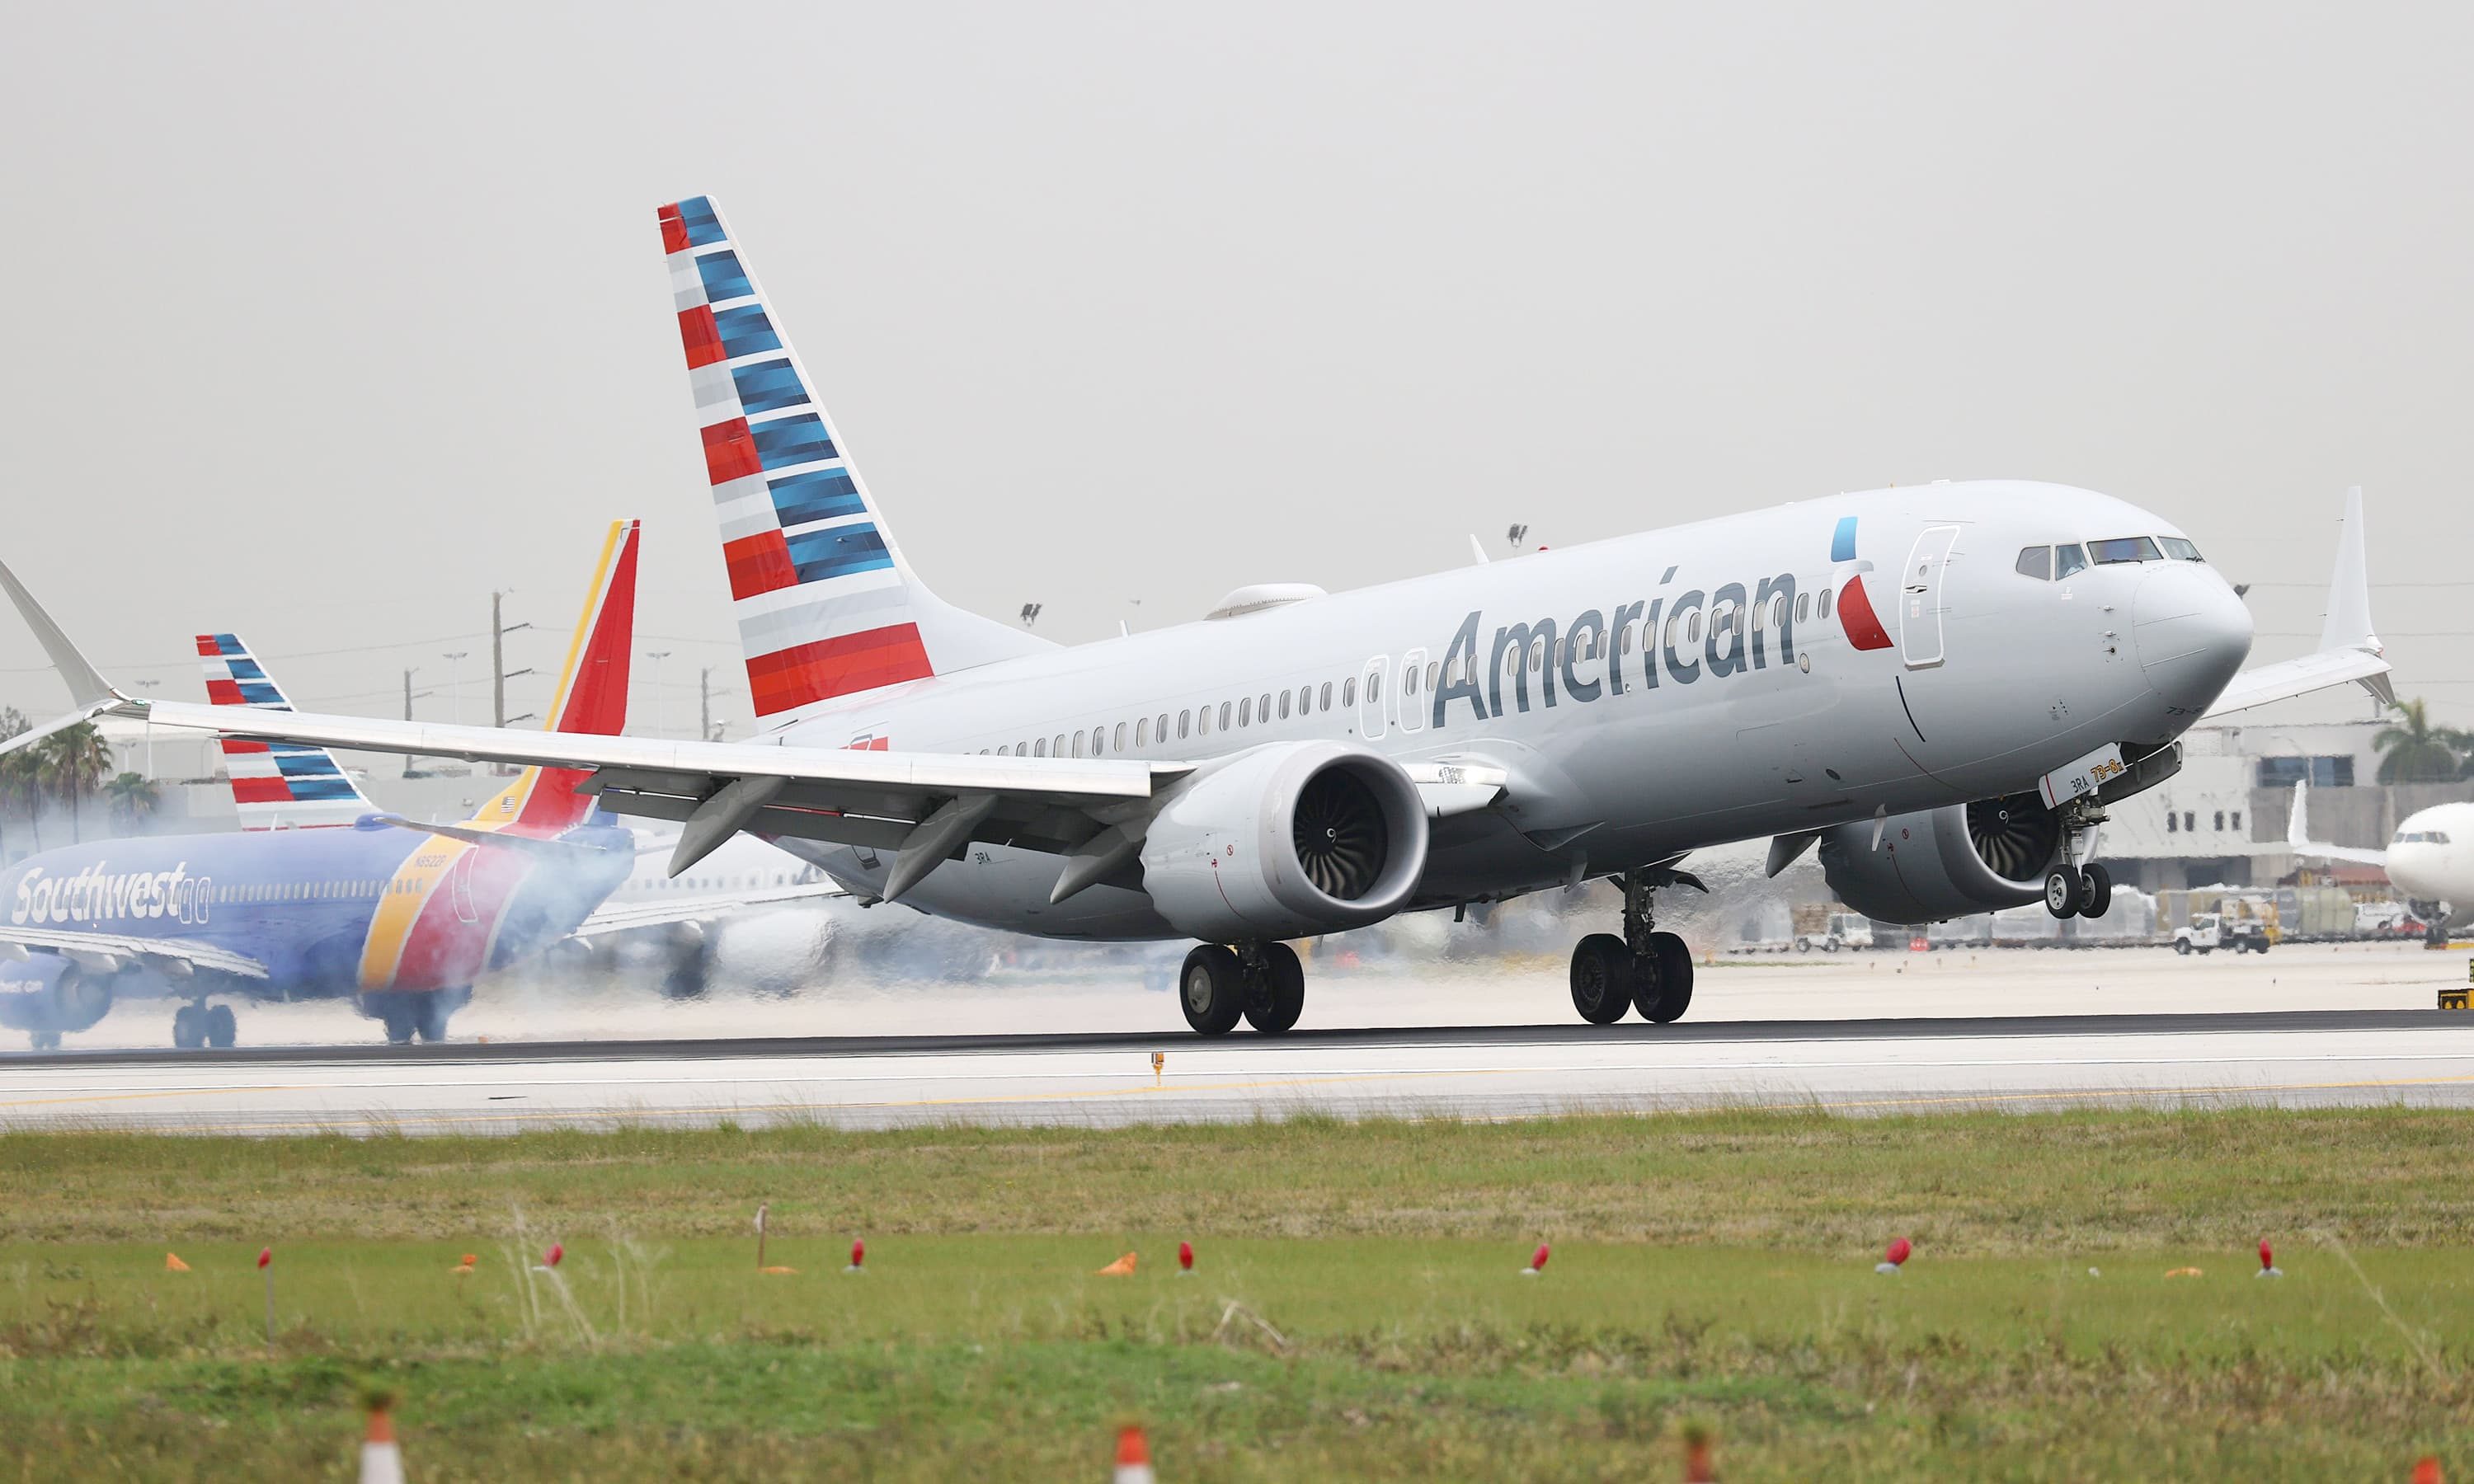 American Airlines says it flew three times as many passengers over July 4 weekend compared with 2020